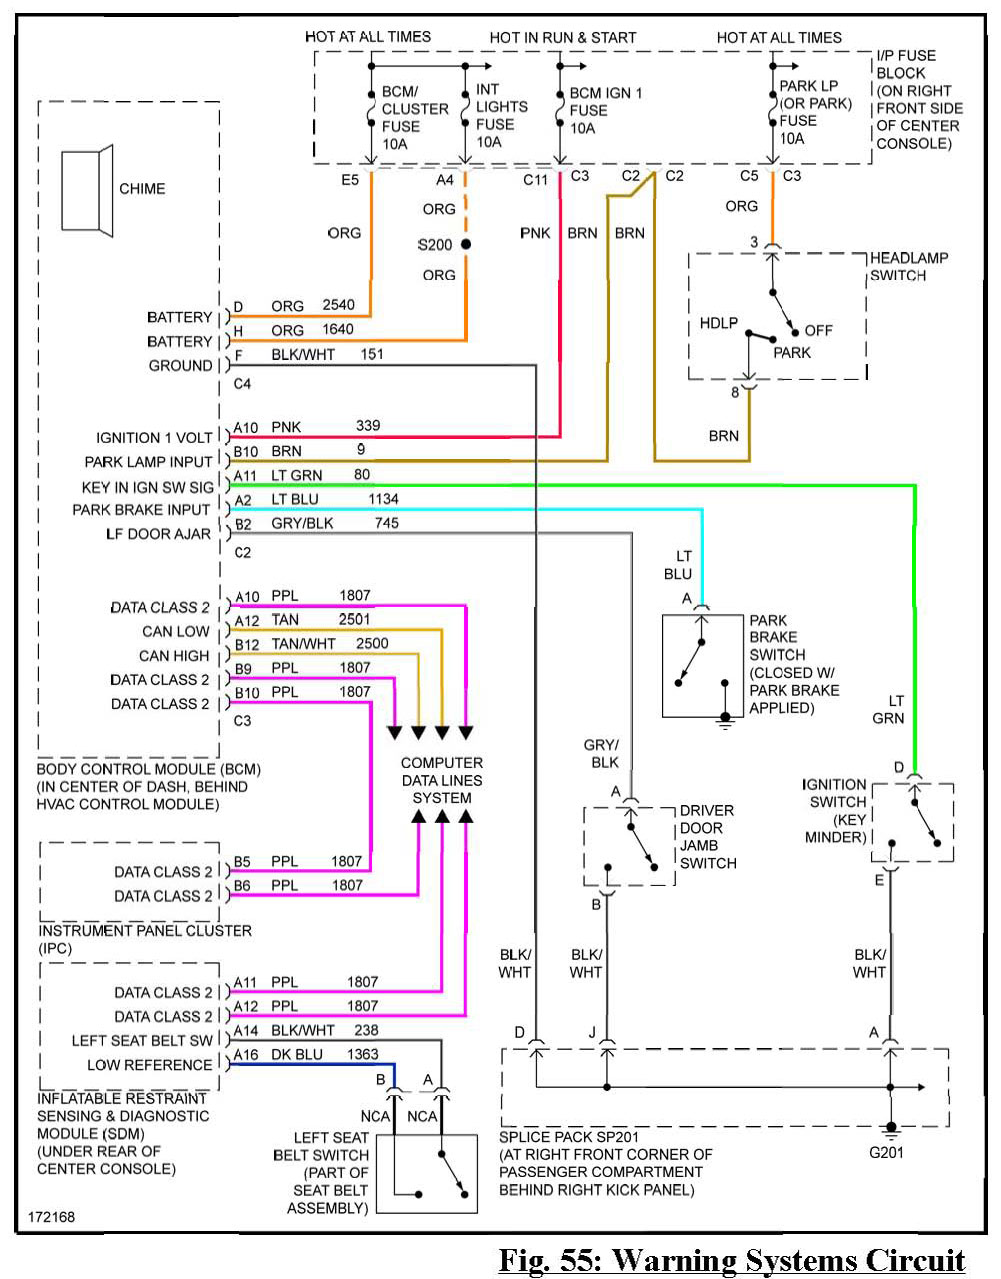 System Wiring Diagrams__110 proton wira wiring diagram efcaviation com wira fuse box diagram at mifinder.co